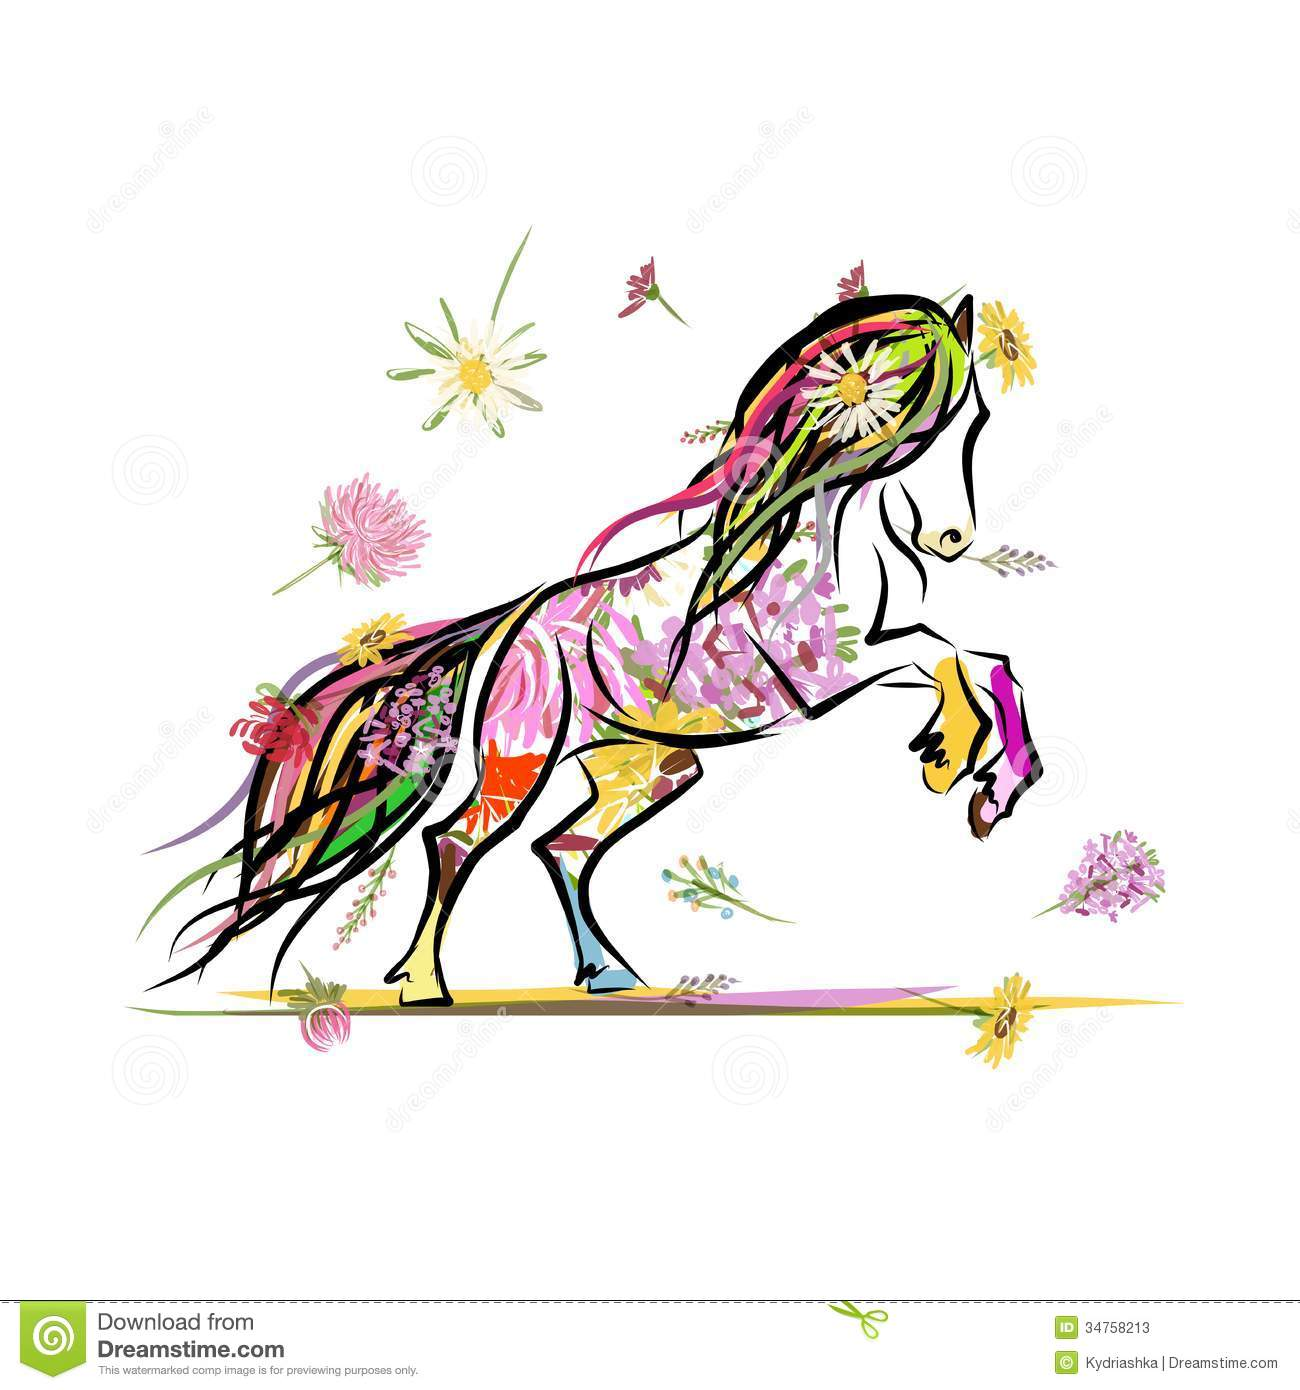 File Decoration Designs: Horse Sketch With Floral Decoration For Your Stock